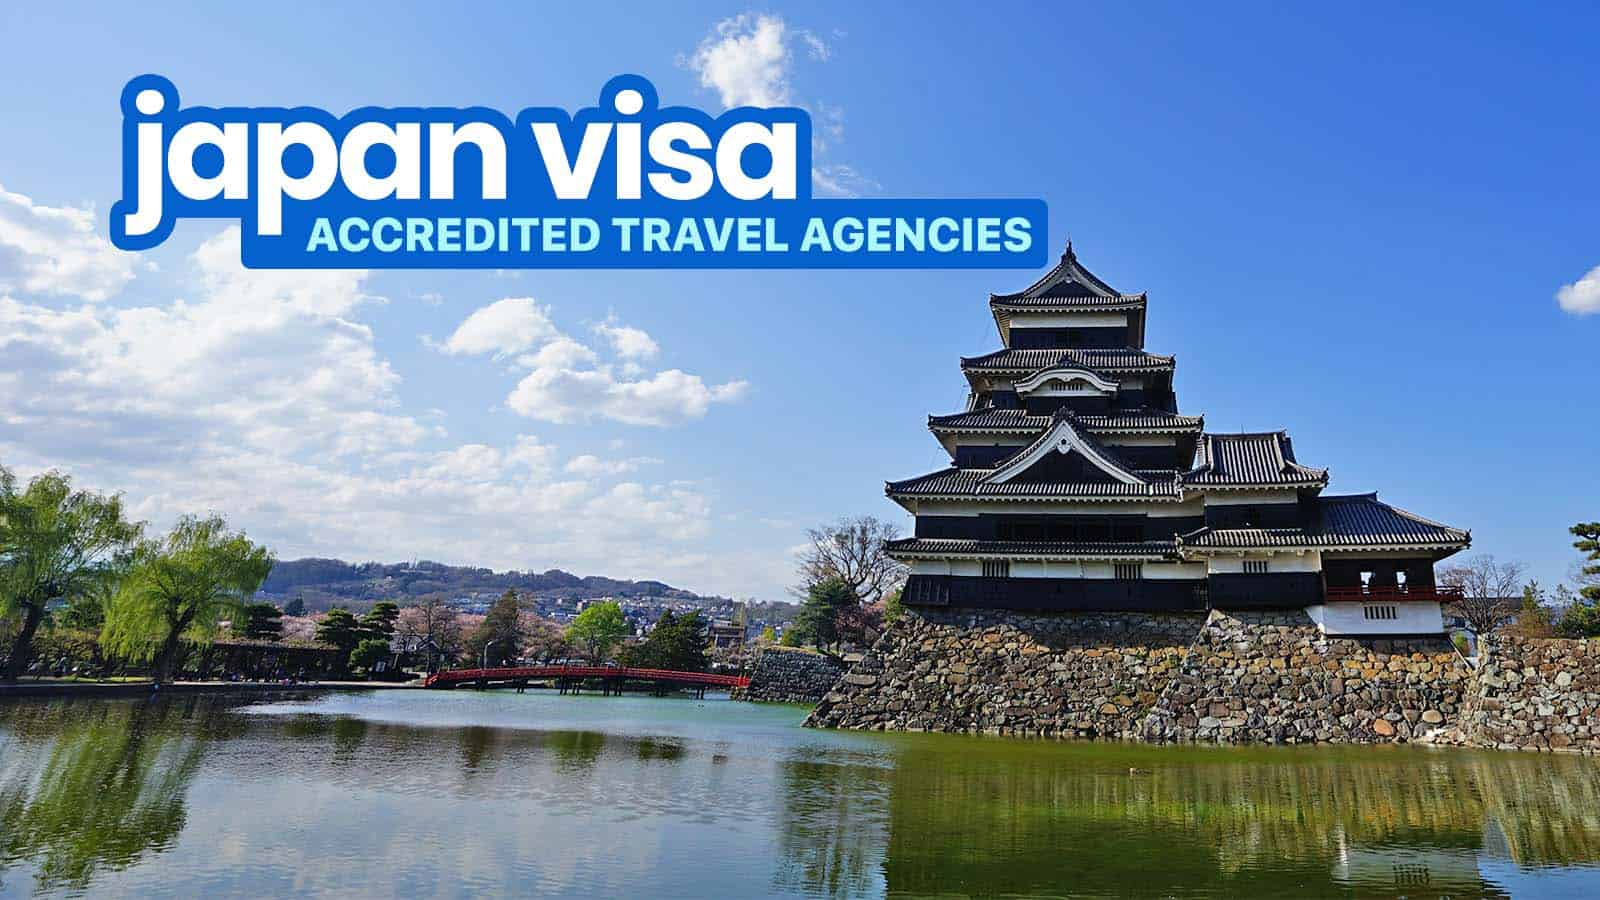 JAPAN VISA: LIST OF TRAVEL AGENCIES Accredited by the Embassy